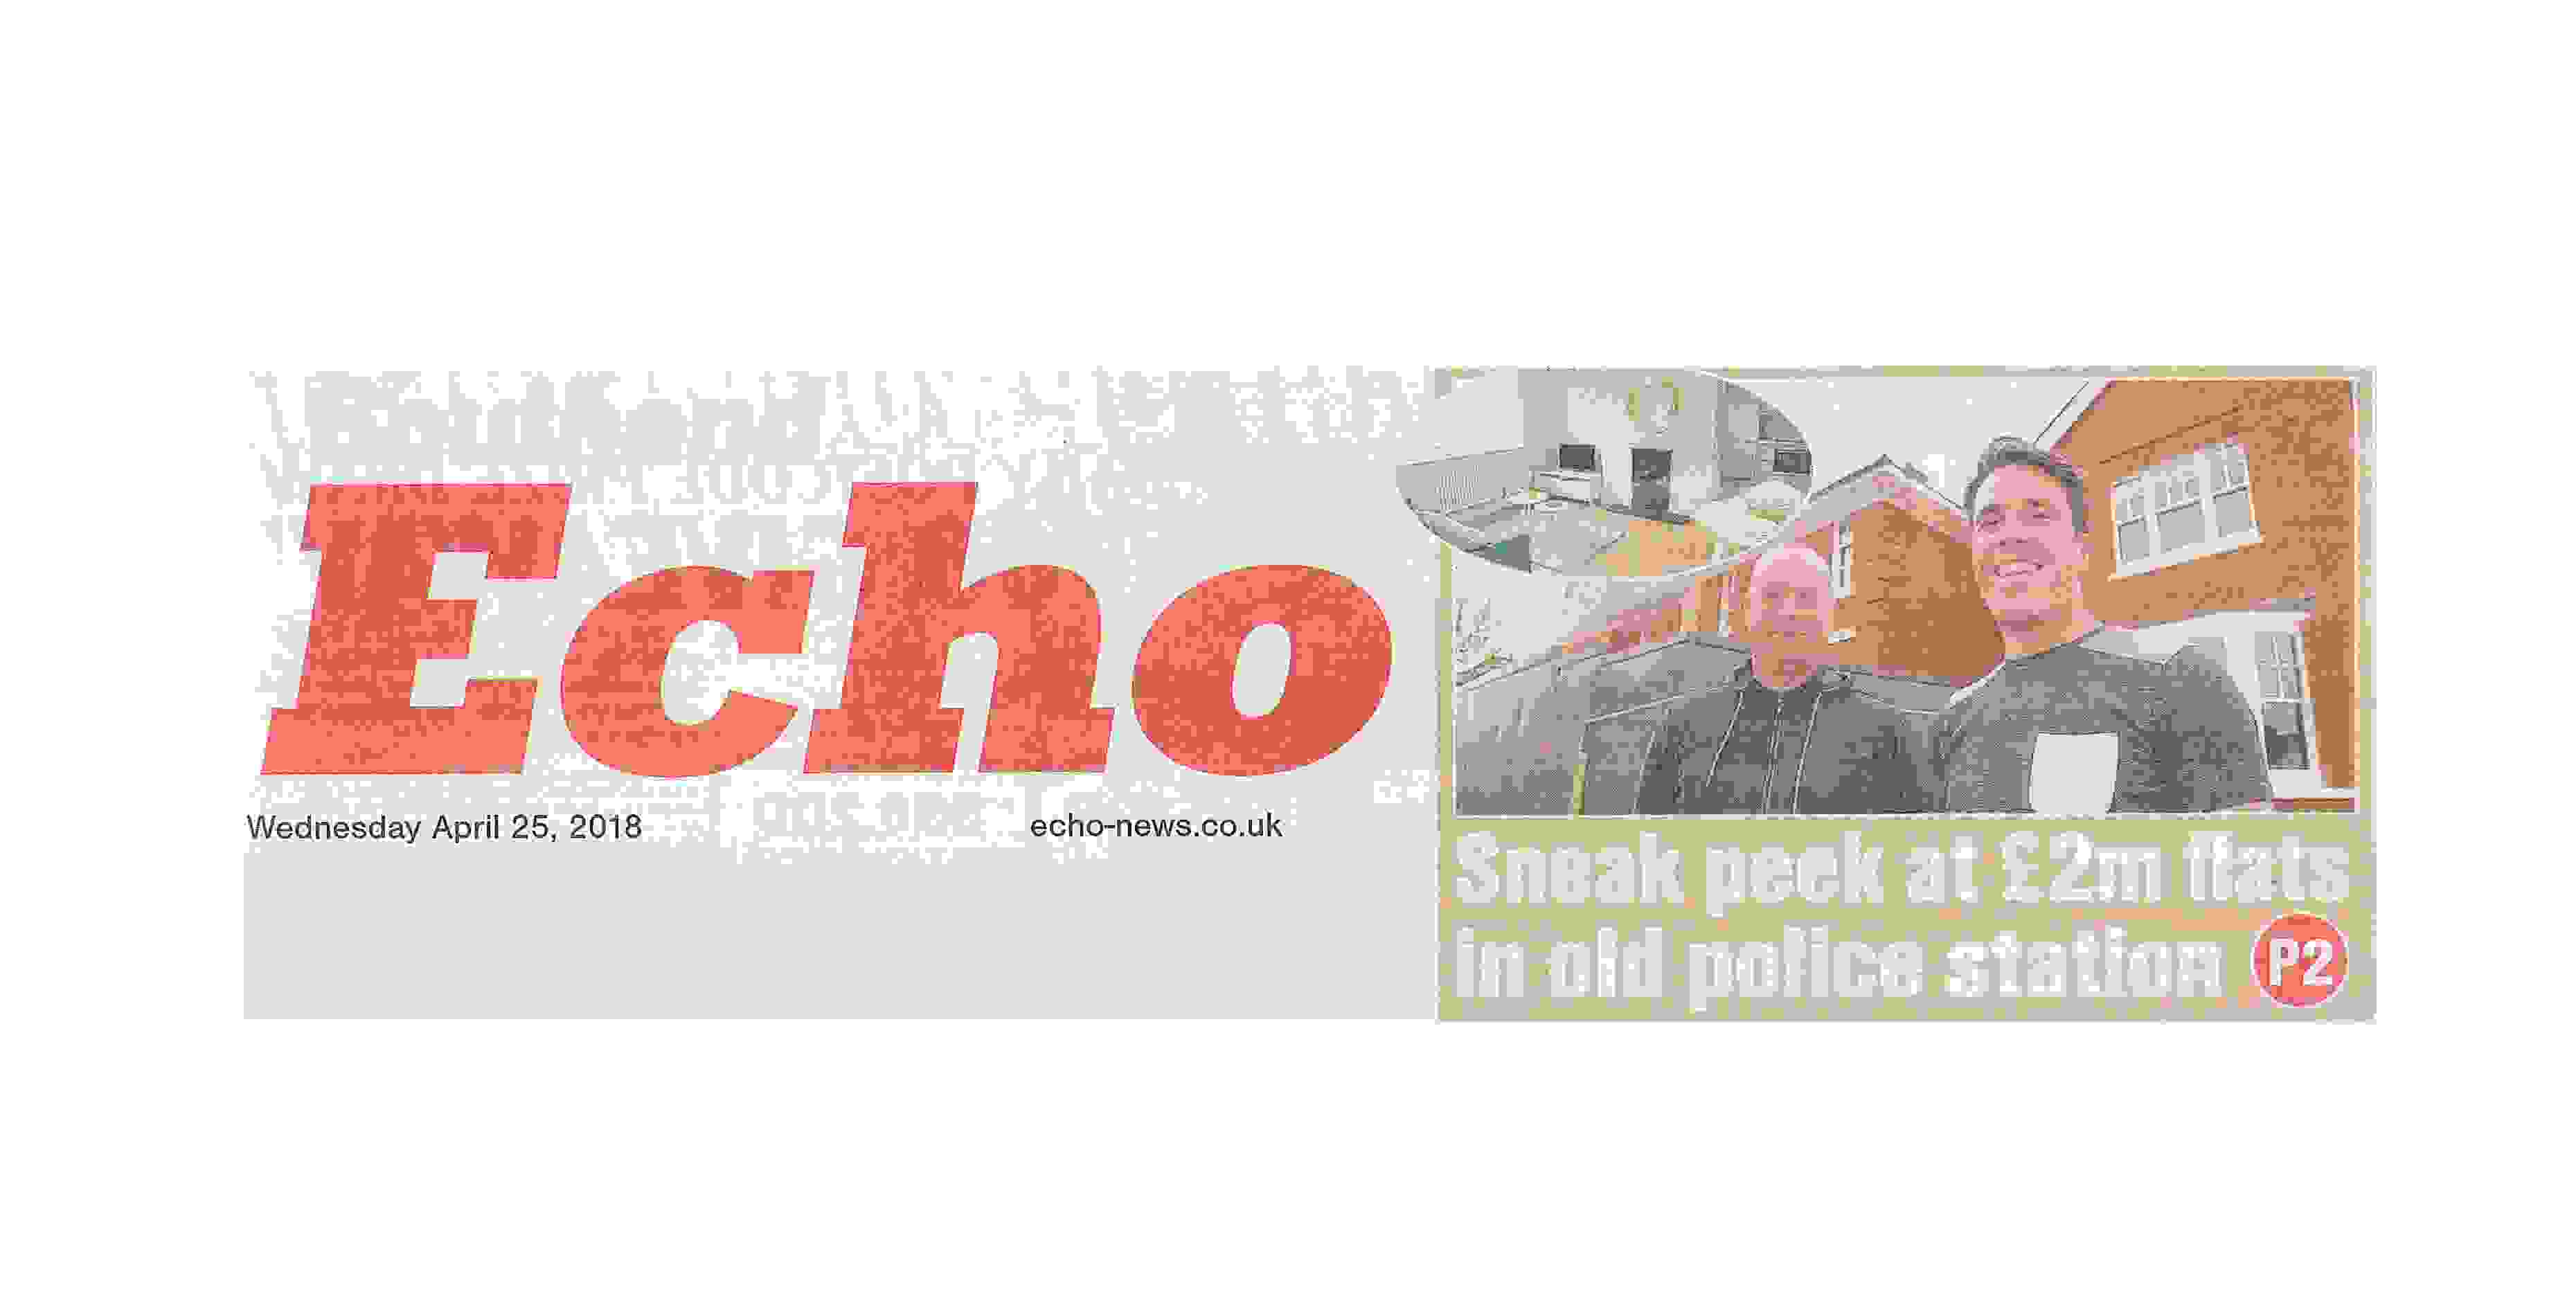 Westcliff Police Station featured in Southend Echo